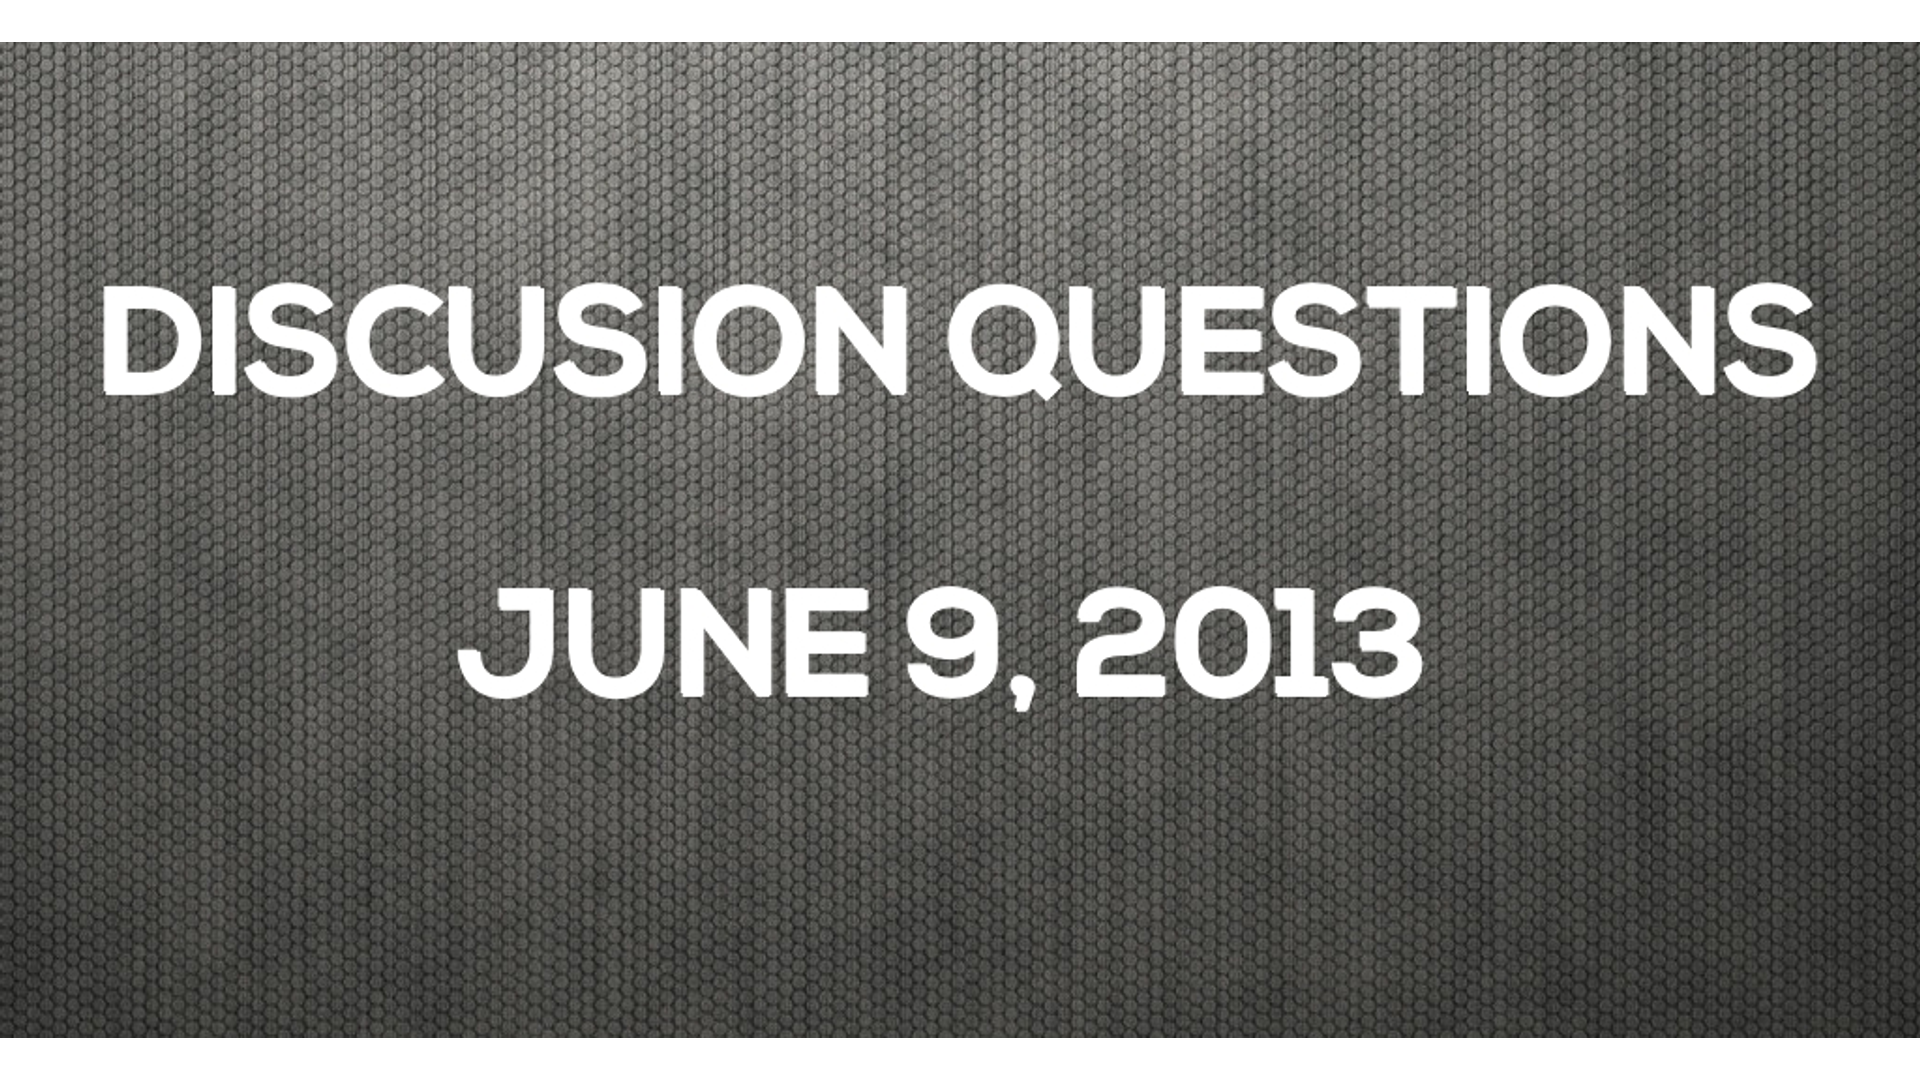 Discussion Questions: June 9, 2013 Hero Image